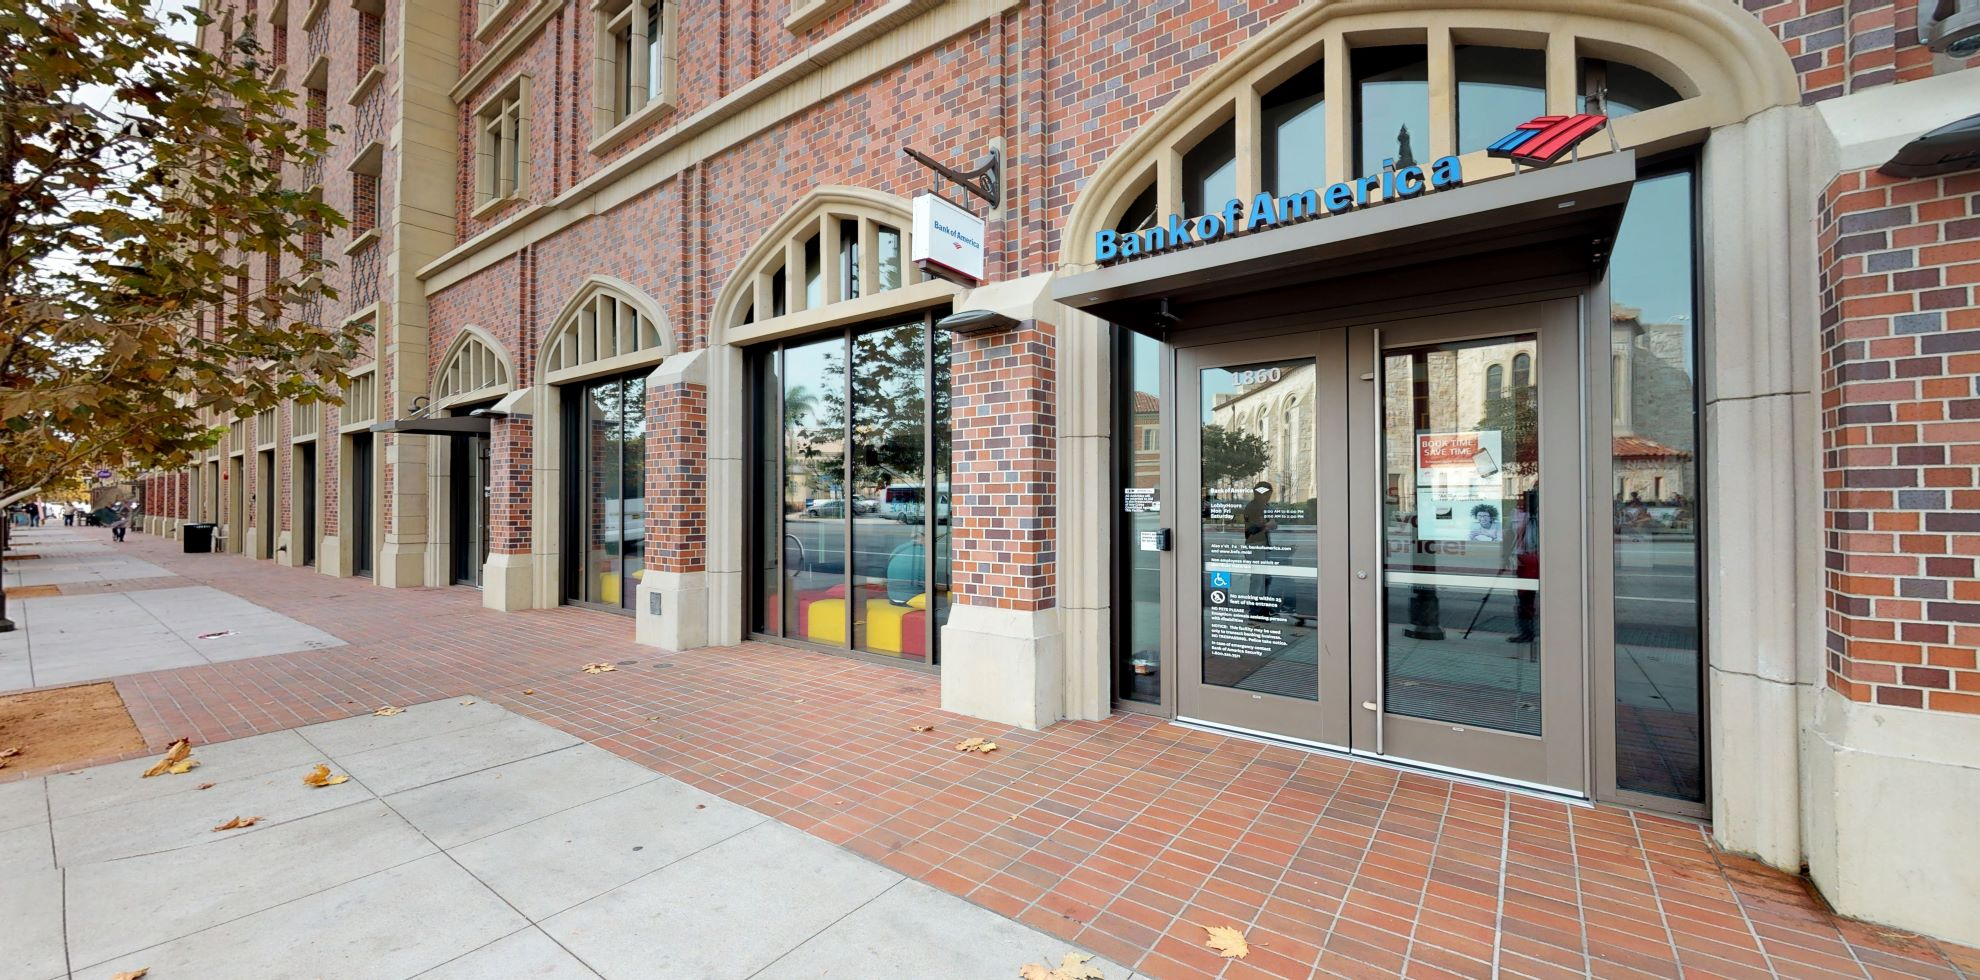 Bank of America financial center with walk-up ATM | 3201 S Hoover St STE 1860, Los Angeles, CA 90089